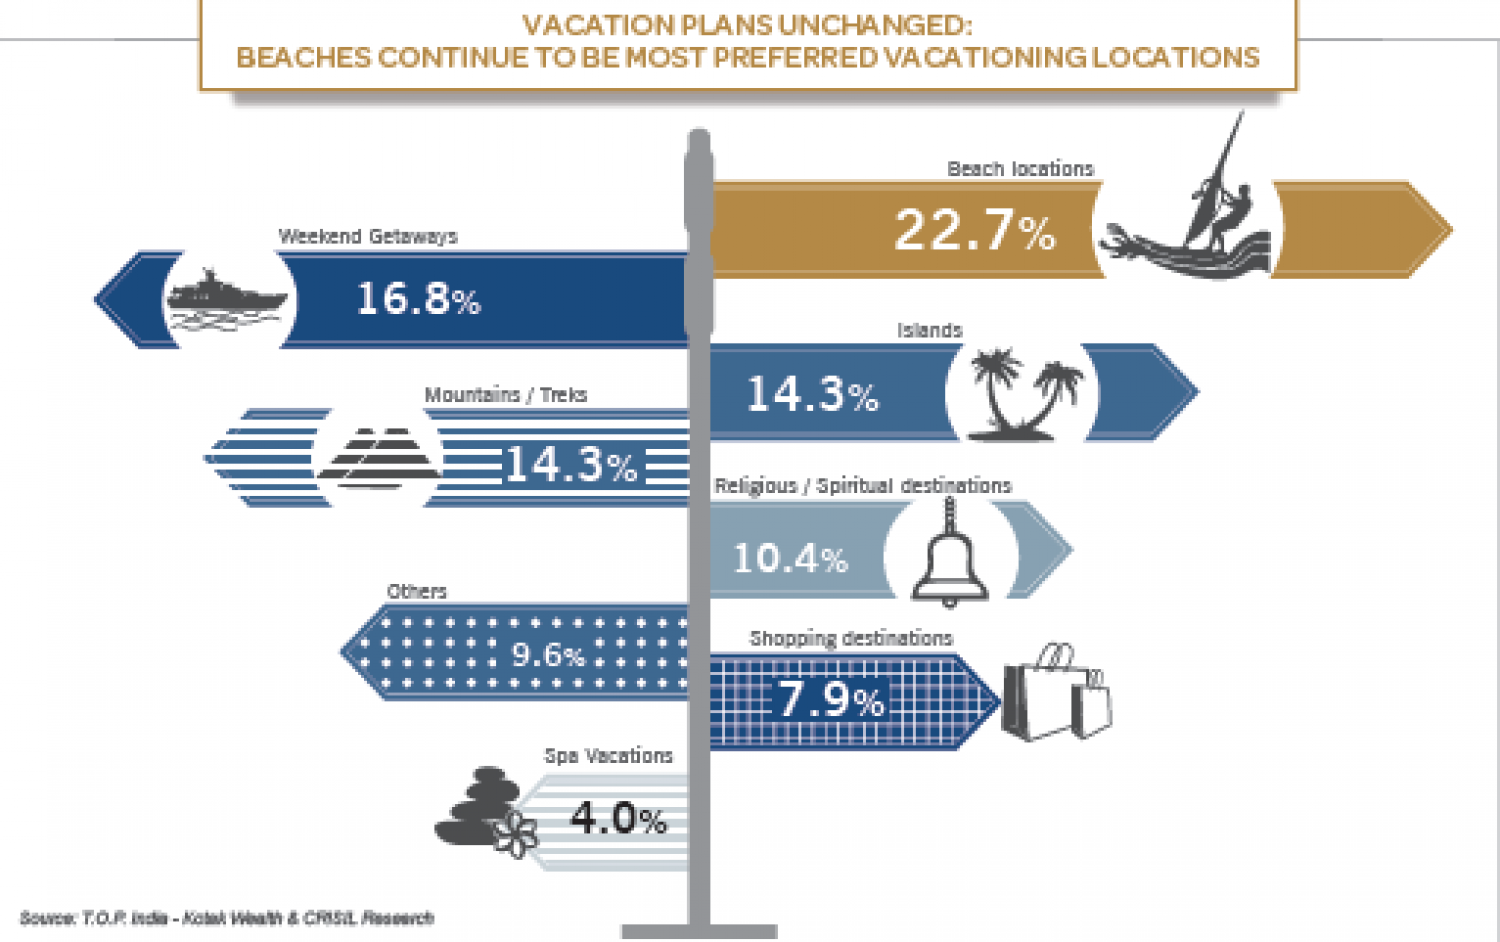 Vacation Plans Unchanged: Beaches Continue to be Most Preferred Vacationing Locations Infographic